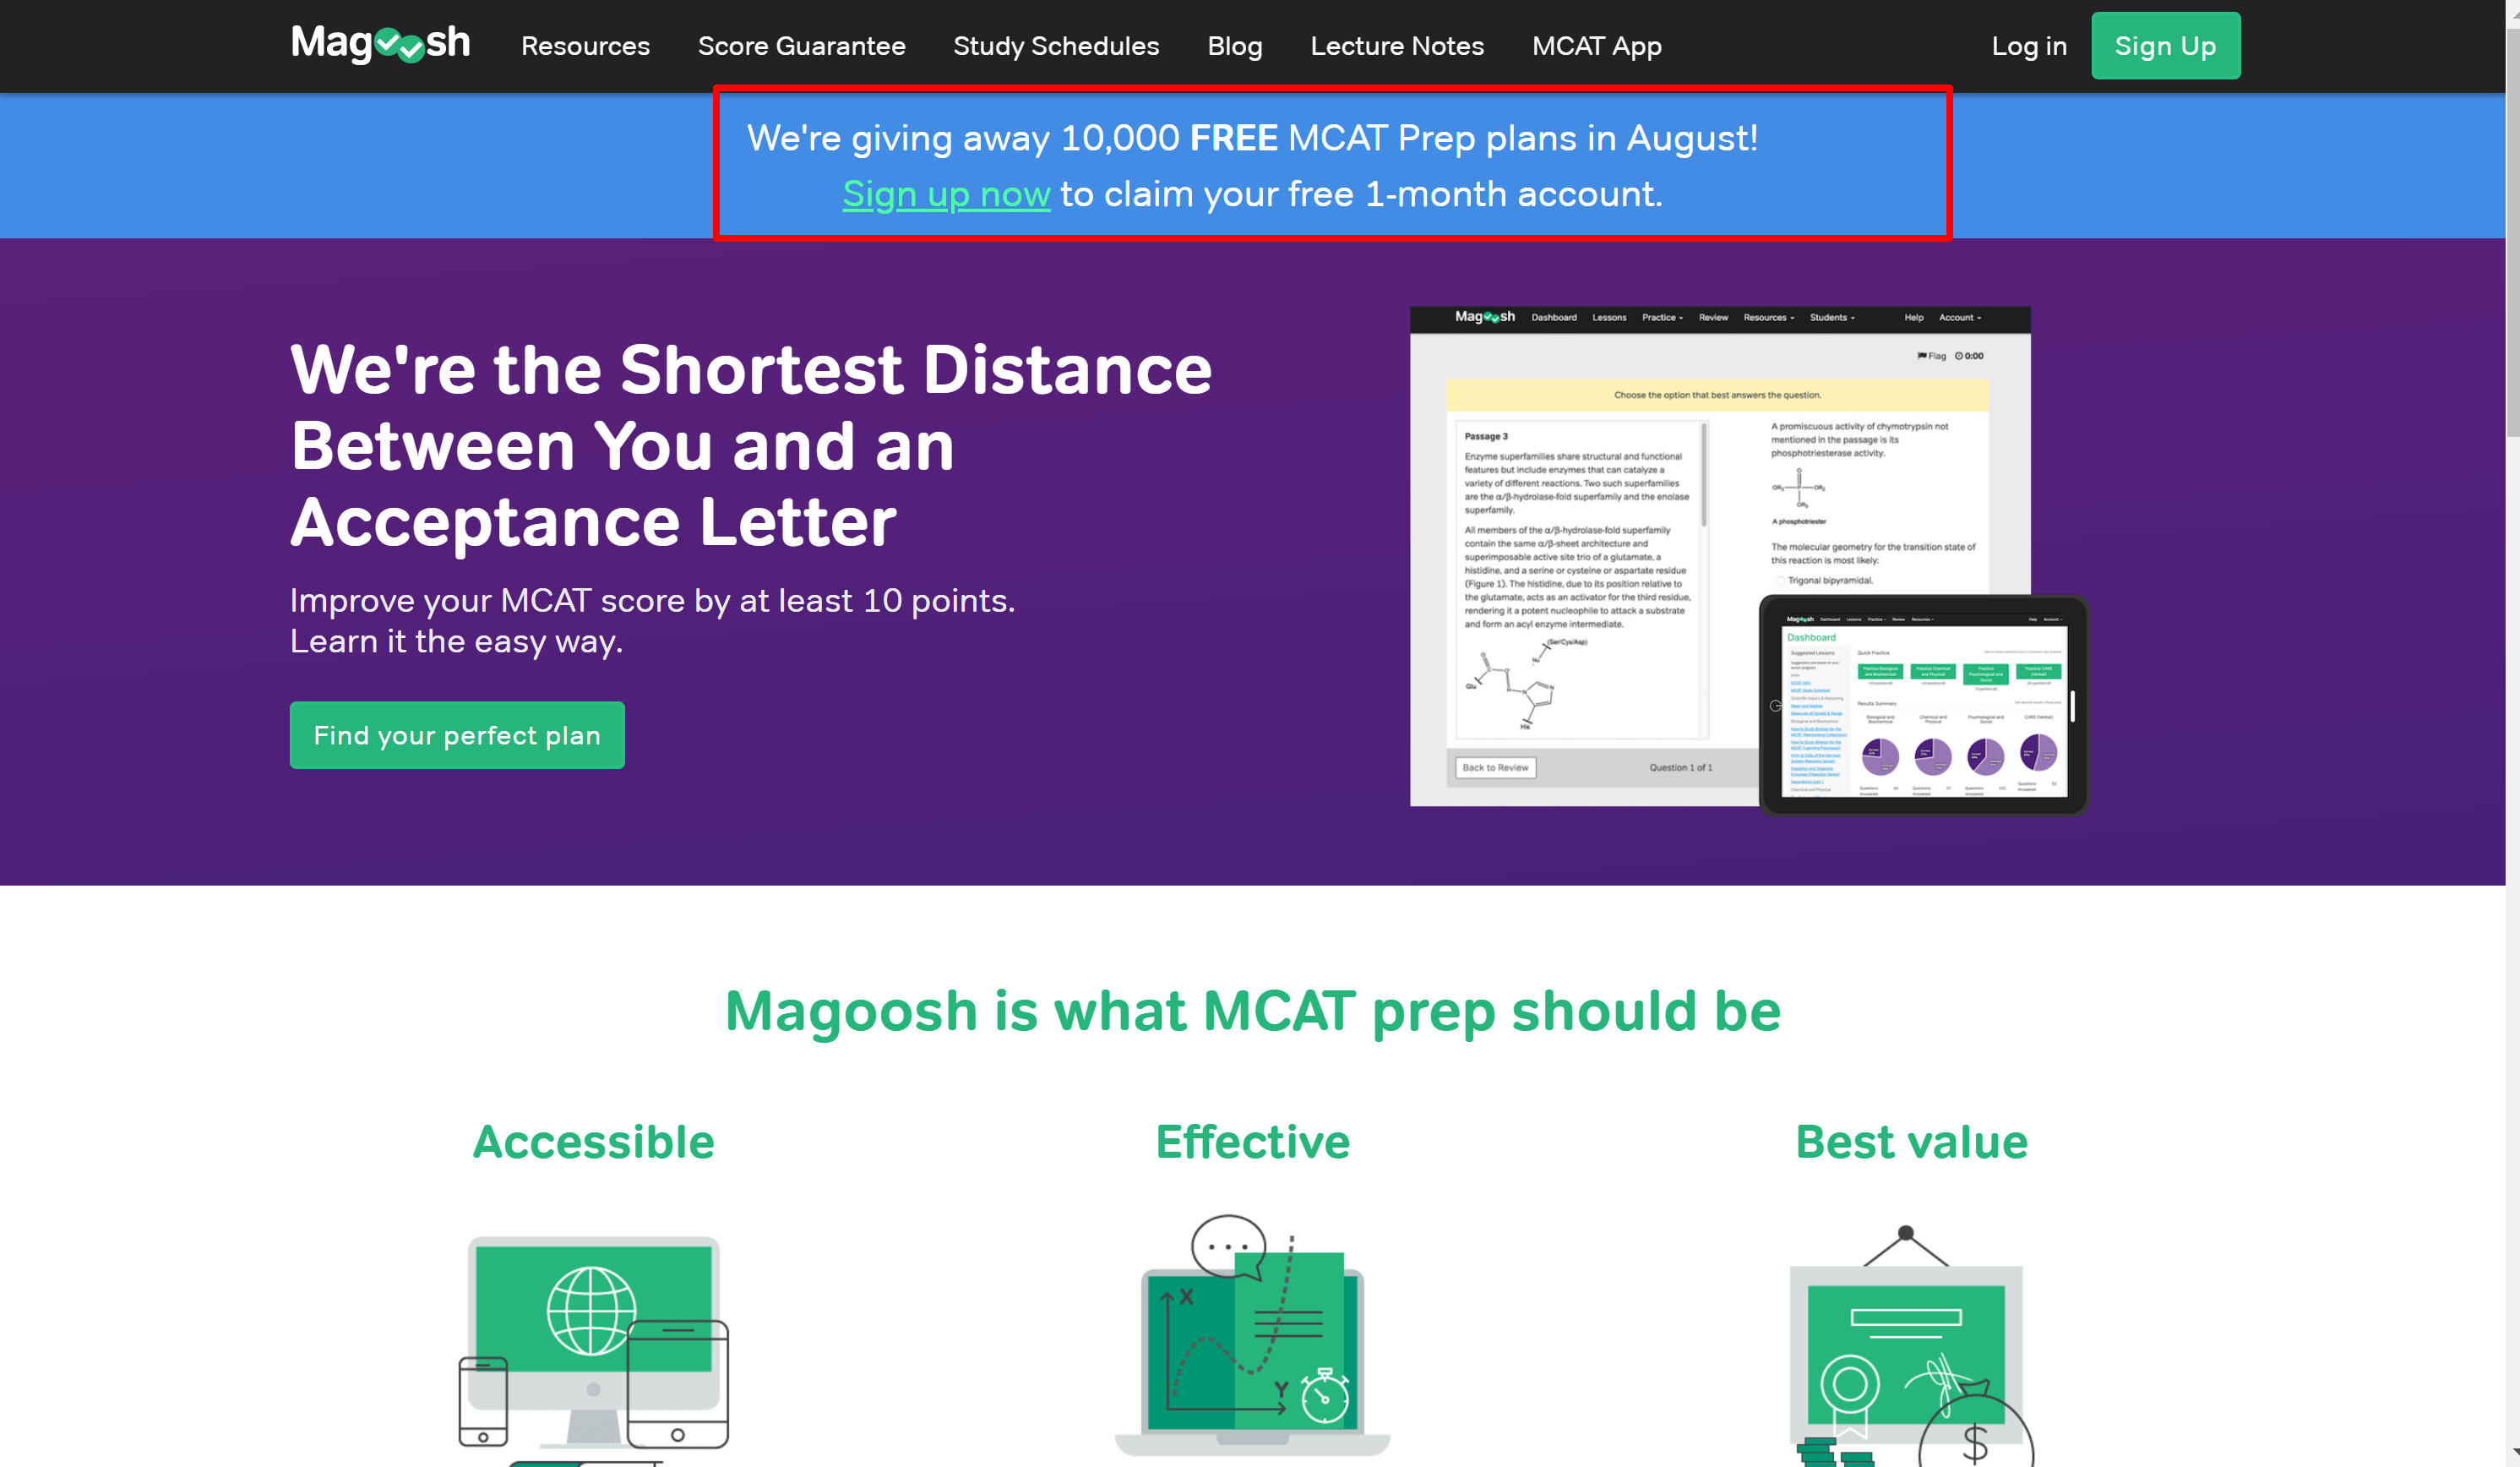 Magoosh Online Test Prep Website Coupons June